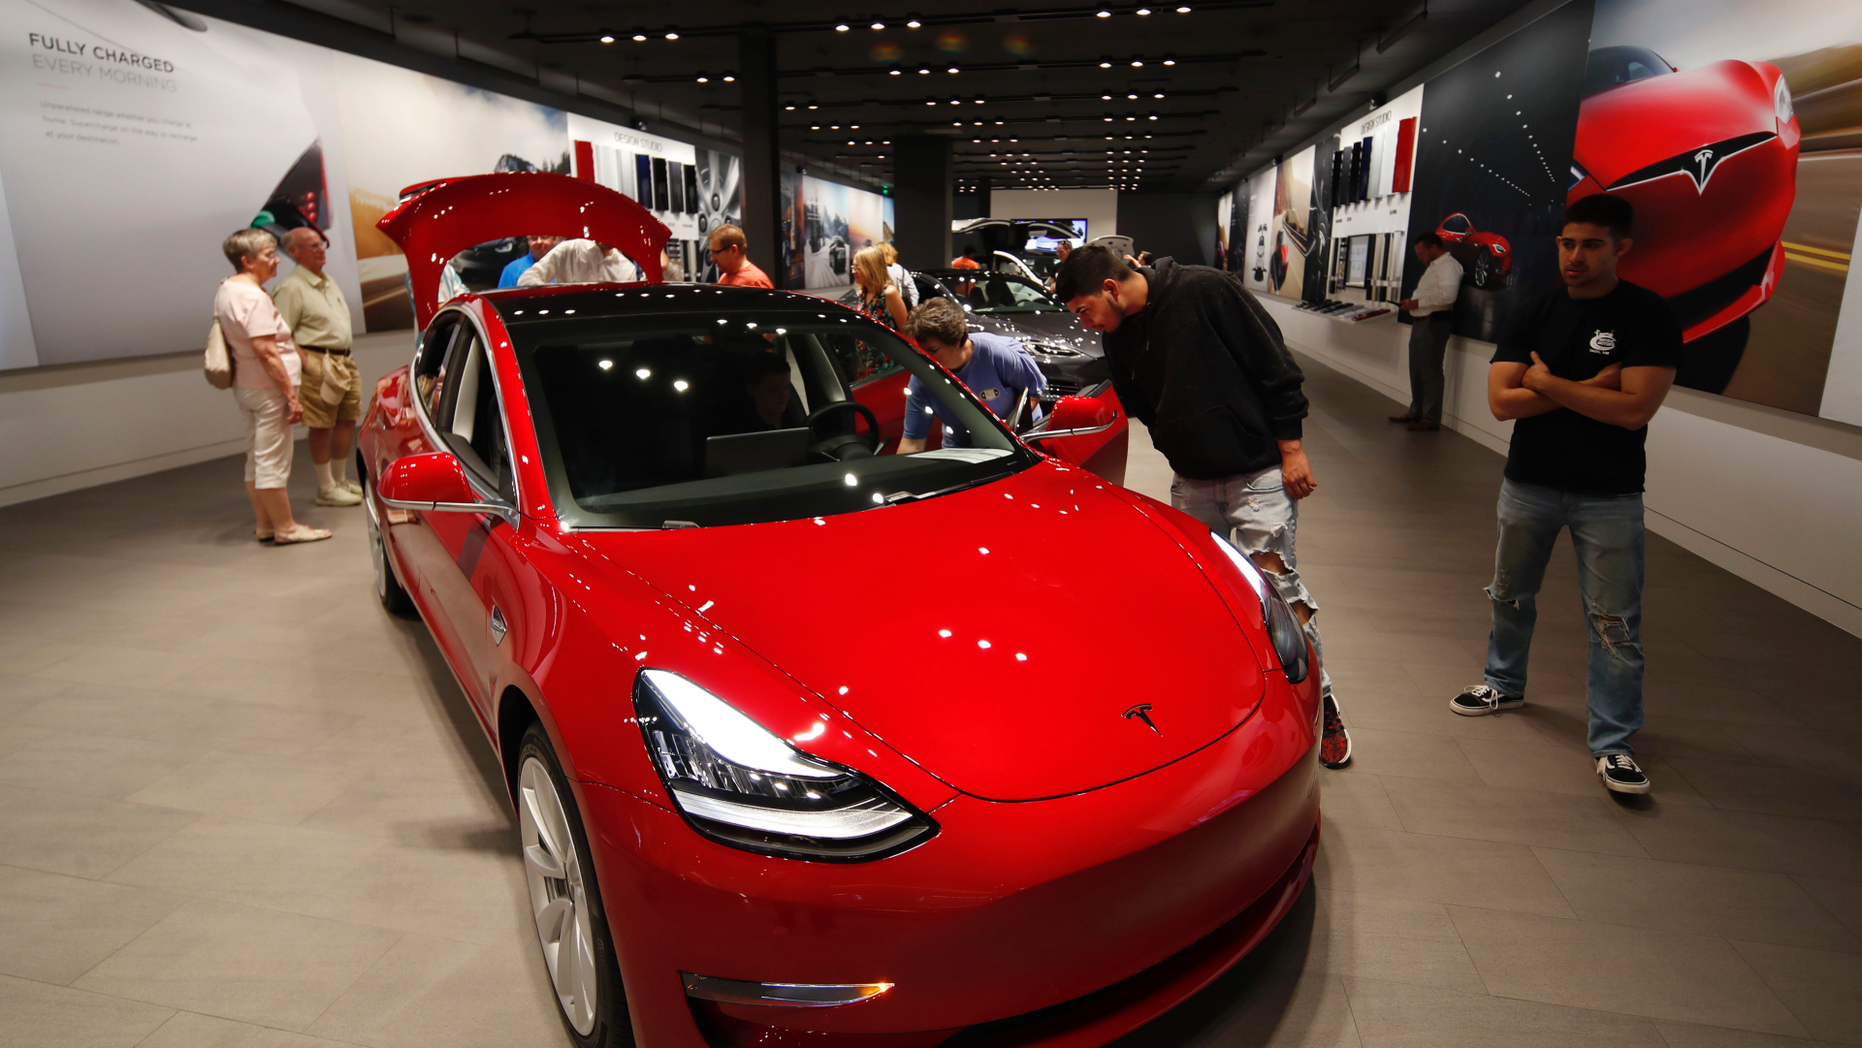 In A U-Turn, Tesla Raises Car Prices, Backtracks On Stores Closure